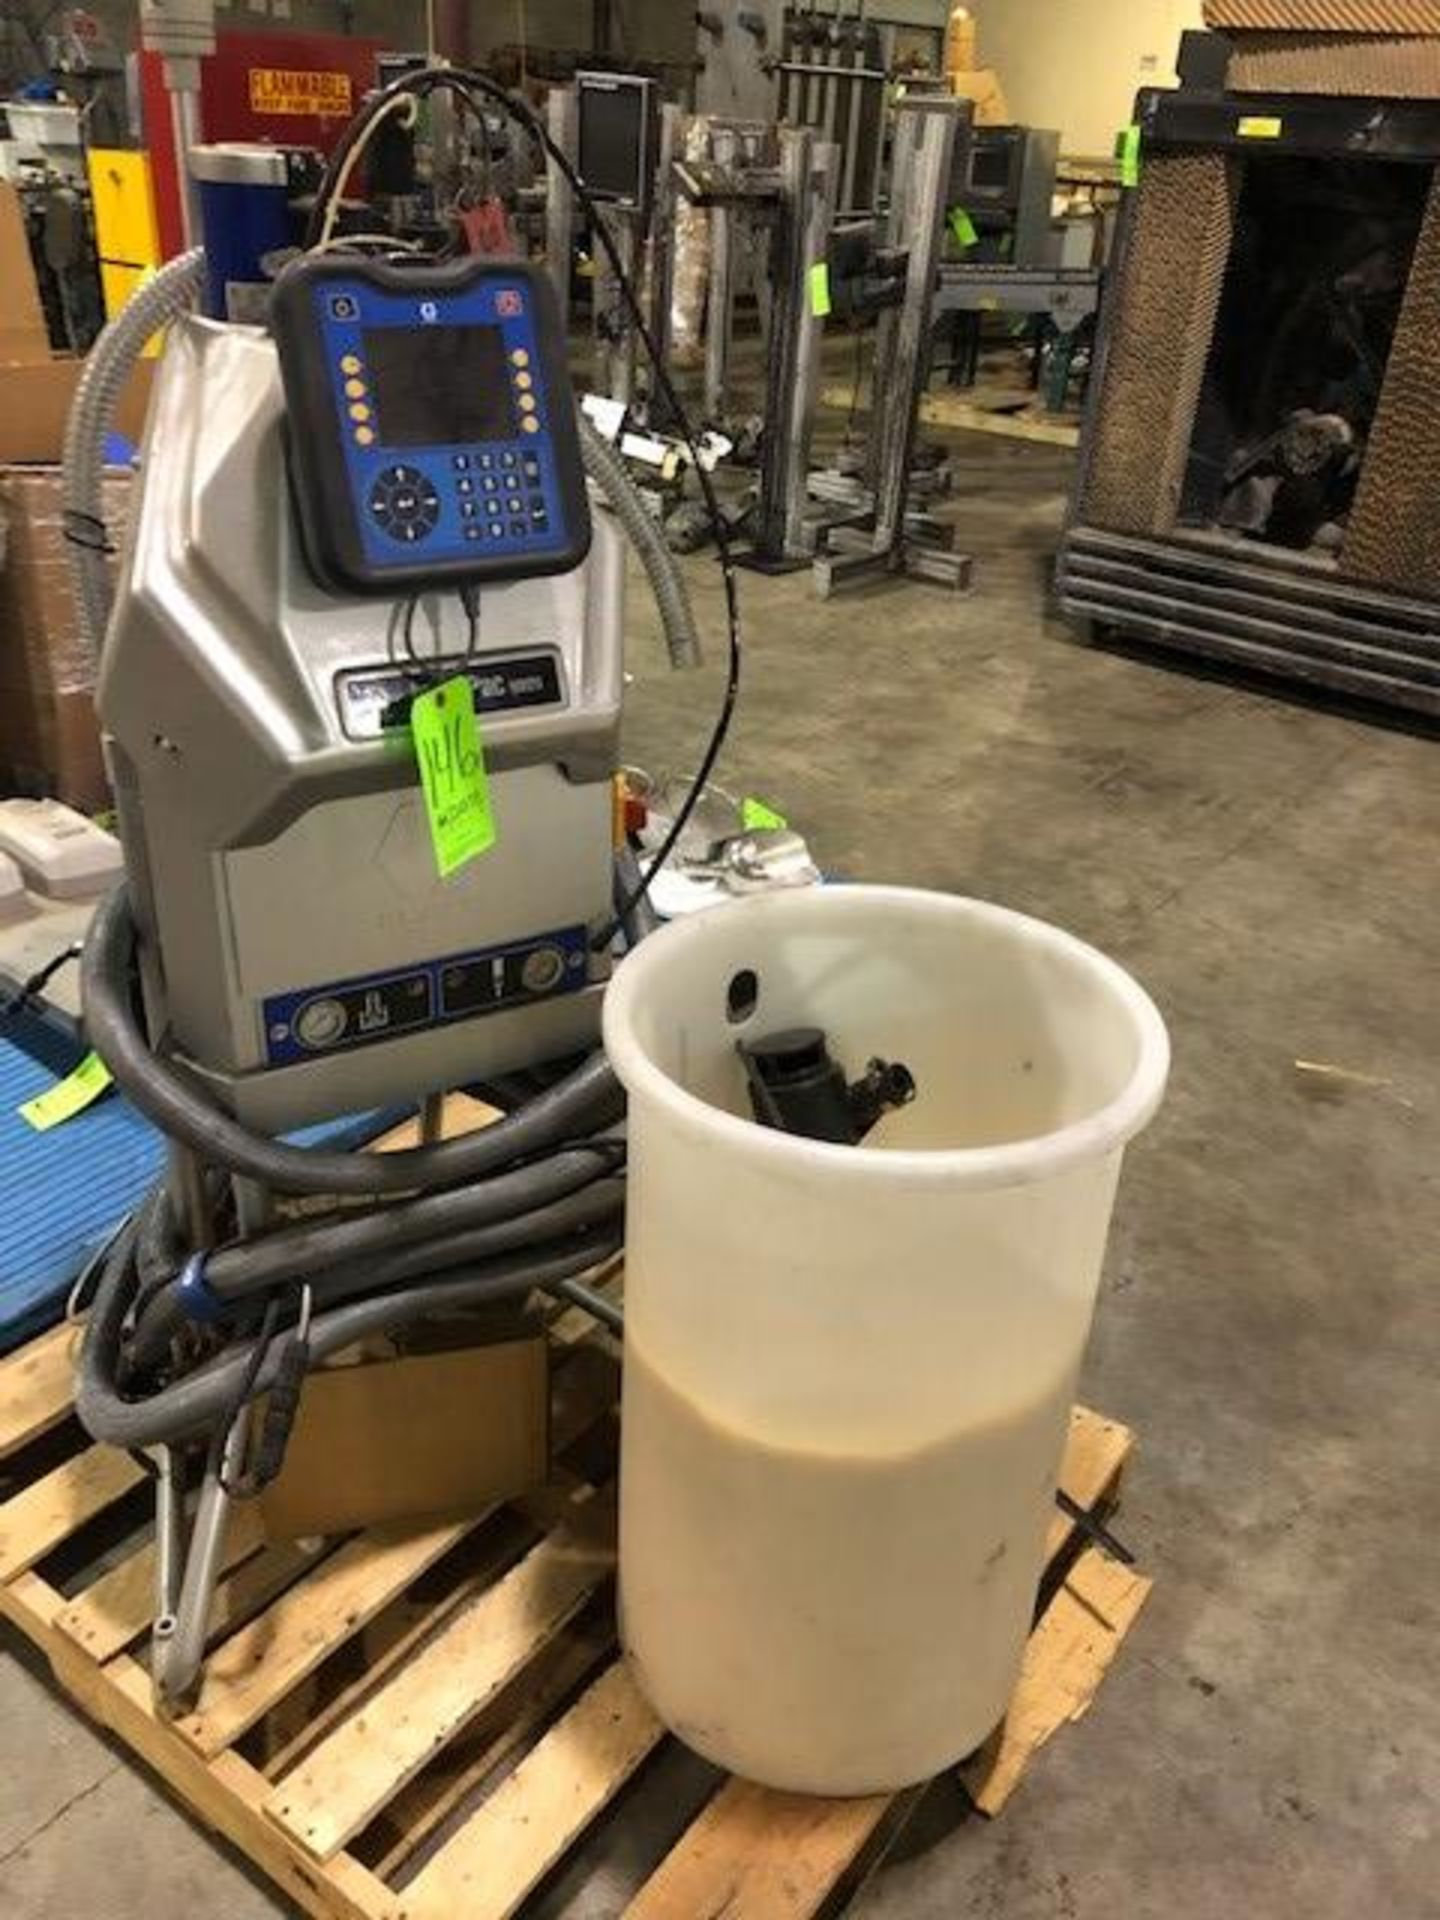 Lot 146 - Graco Invipac HN25 Hot Melt Adhesive Delivery System, M/N HN25SYSTEM, S/N A0246, Series 13A, with